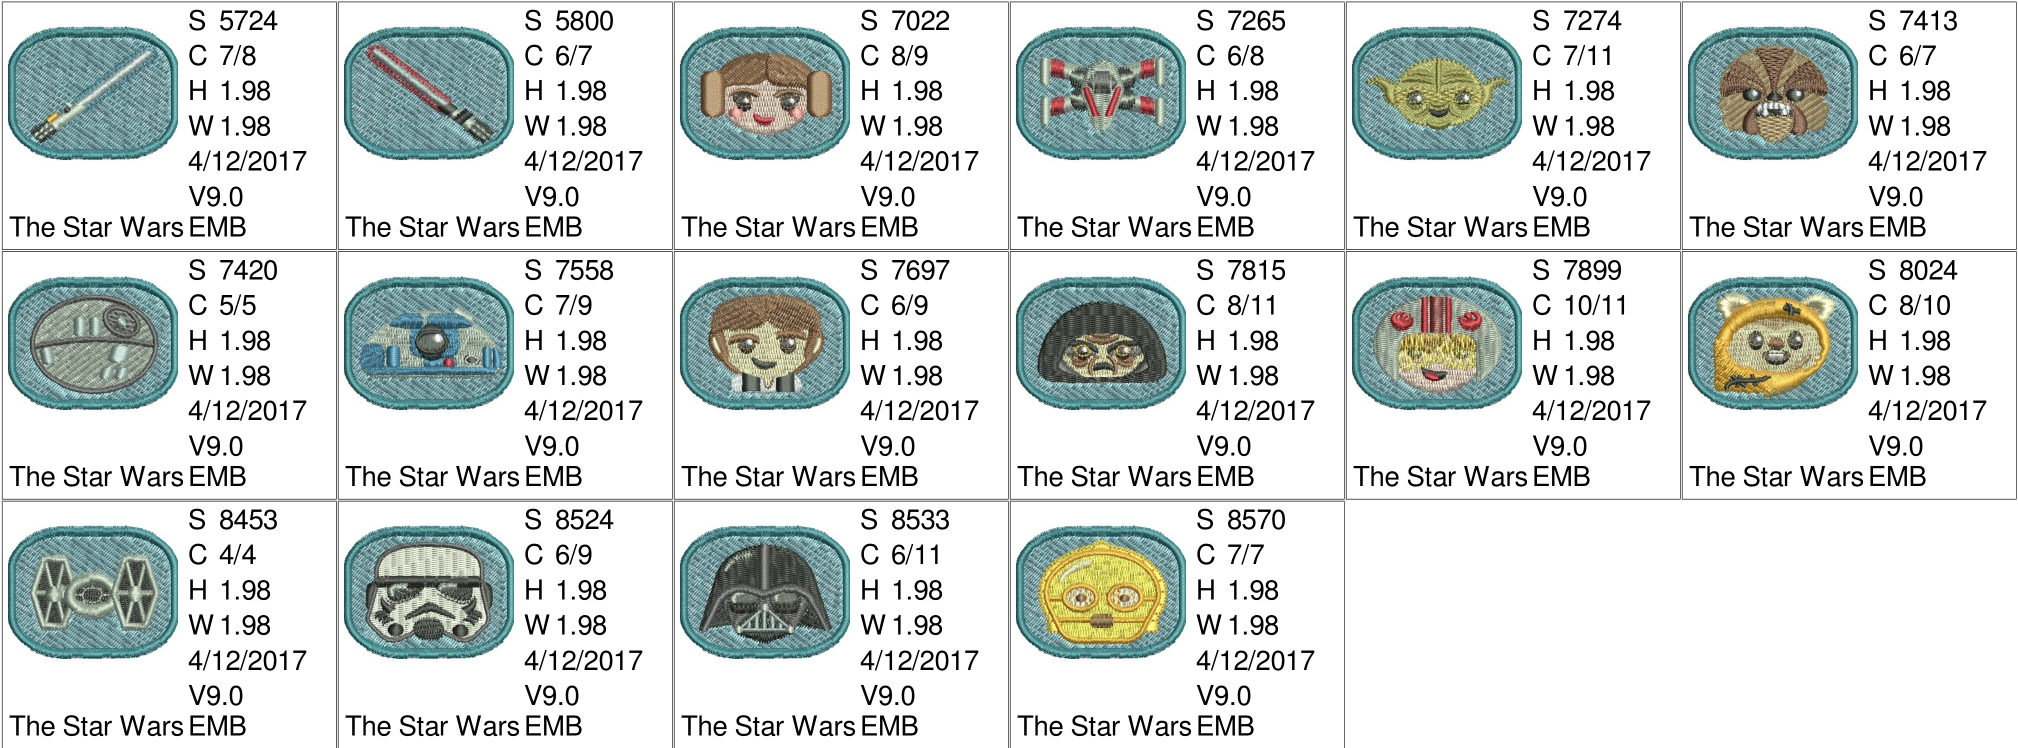 50% off on Starwars Emojis machine embroidery designs for 4in hoop - 16 resizable designs for badges, key fobs, tshirts, hats, towels, bibs.